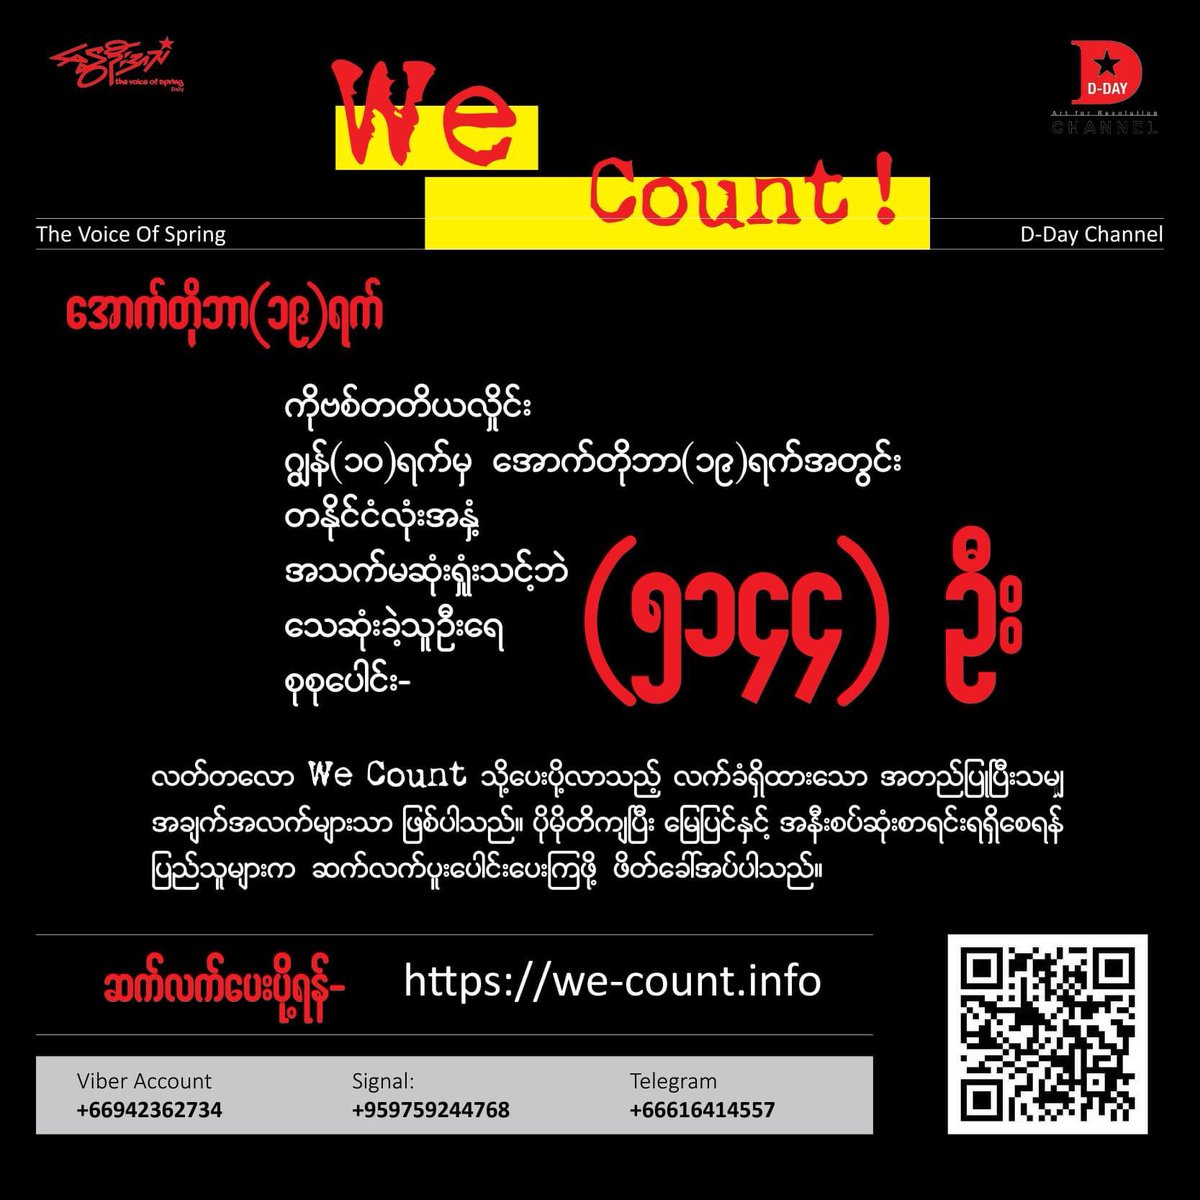 Update, Jun 10 to Oct19, Total Covid deaths: 5144  This is just a confirmed information that #wecount team have recently received. All are invited to continue to participate to obtain a list that is closer to the ground and more accurate. #Oct20Coup  #WhatsHappeningInMyanmar